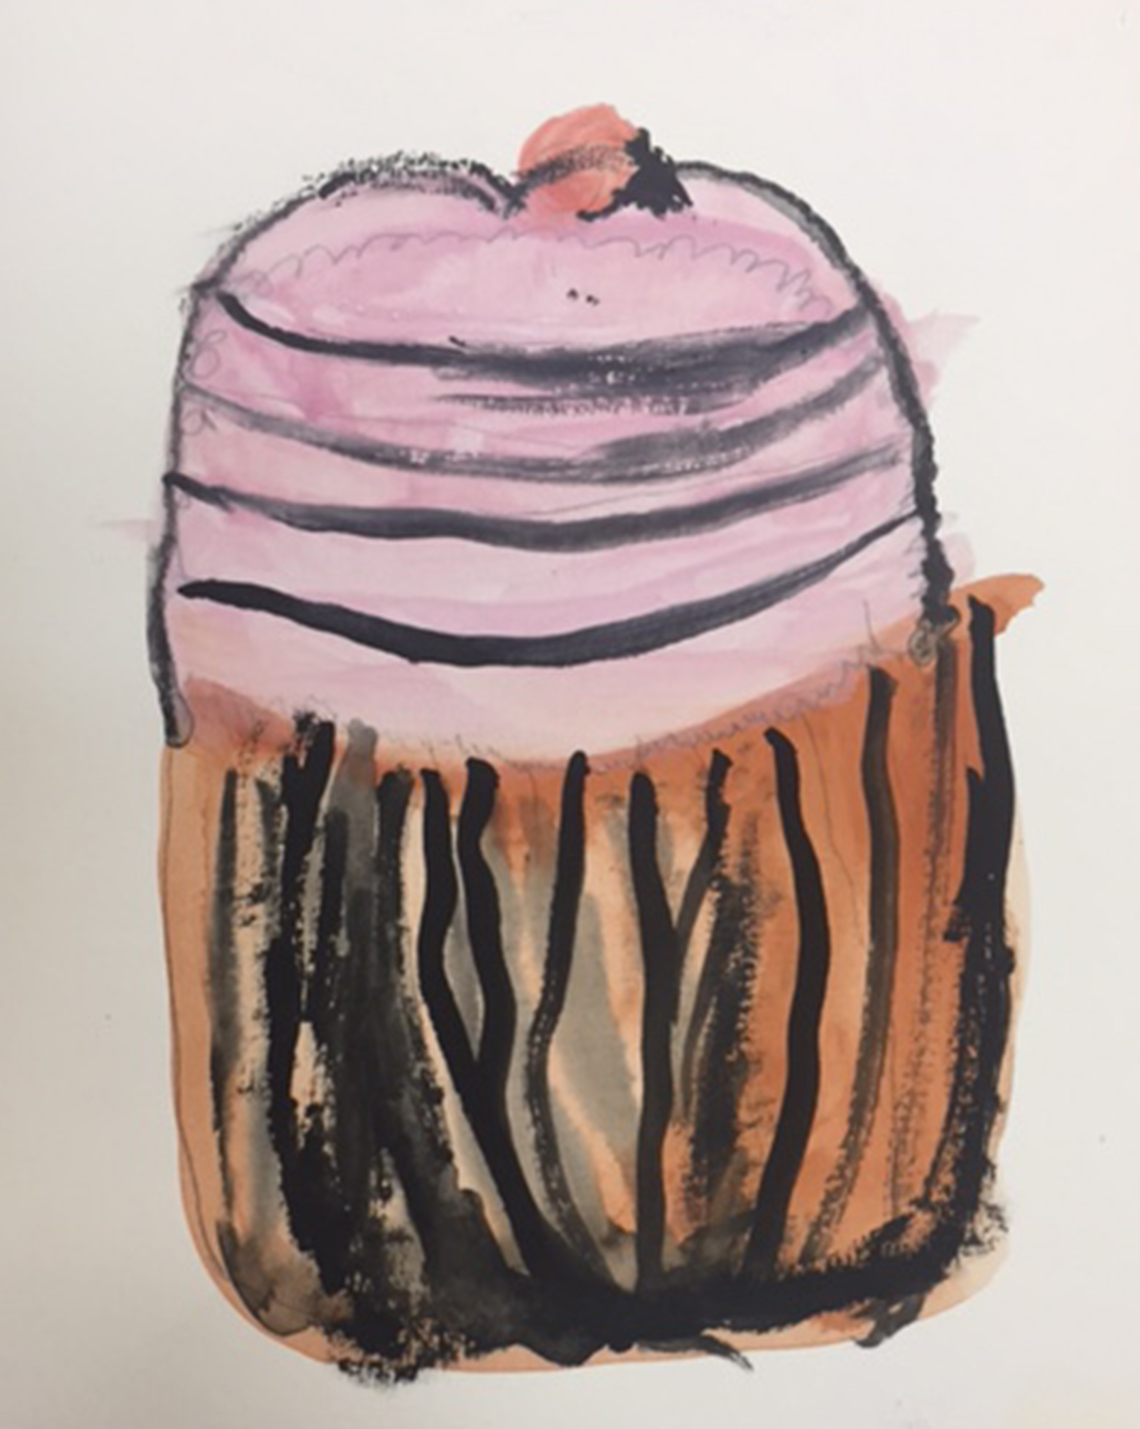 Painting of pink cupcake in a brown wrapper. Artist is a dementia patient.